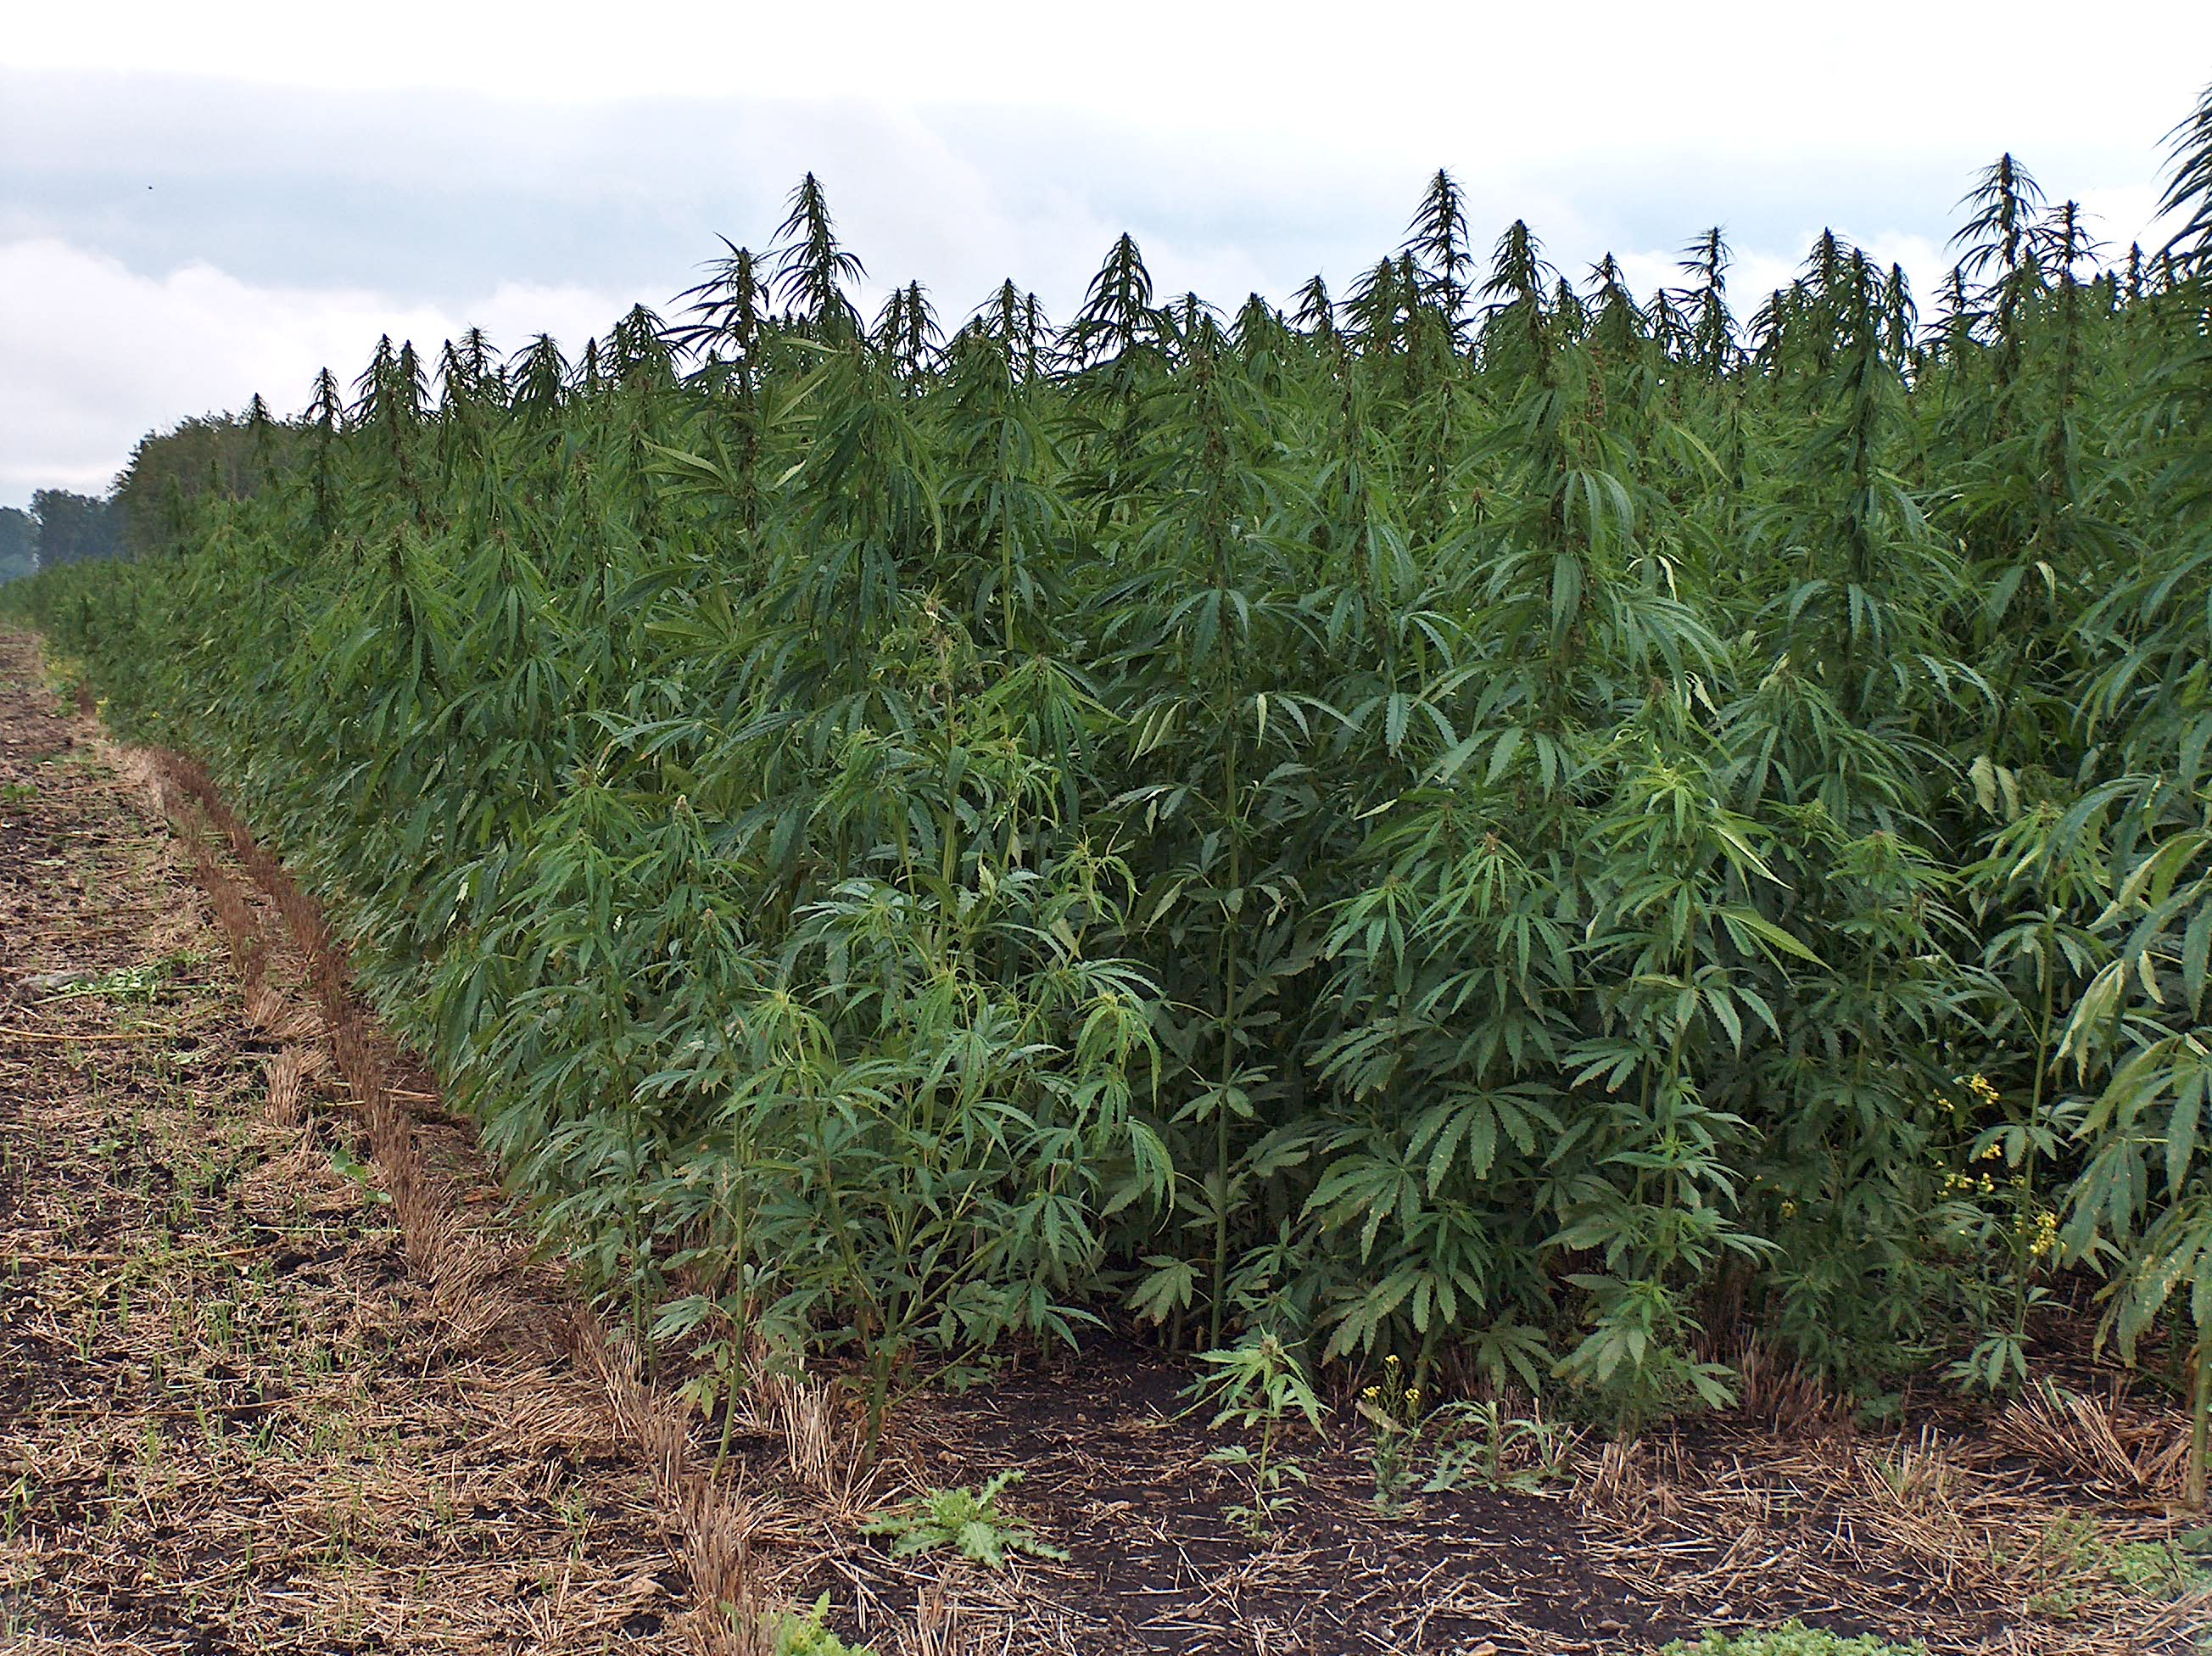 Industrial hemp has the potential to positively impact the lives of Americans more than either recreational or medical uses of cannabis.